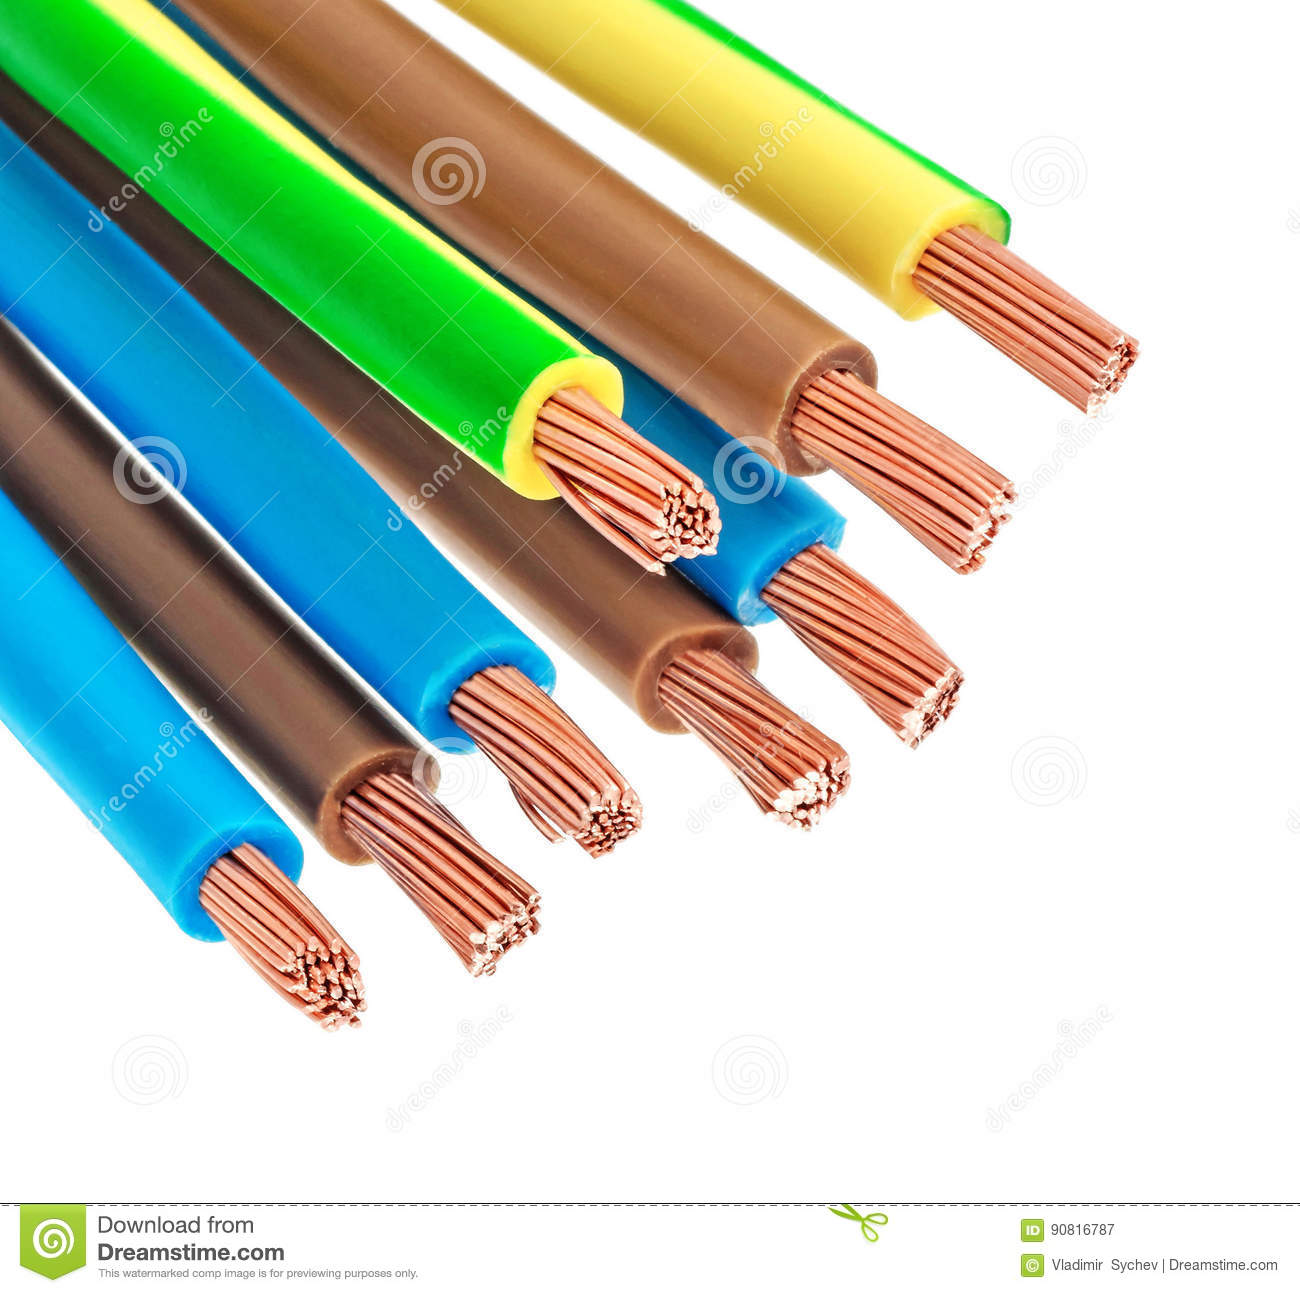 Copper electric wires stock illustration. Illustration of electrical ...